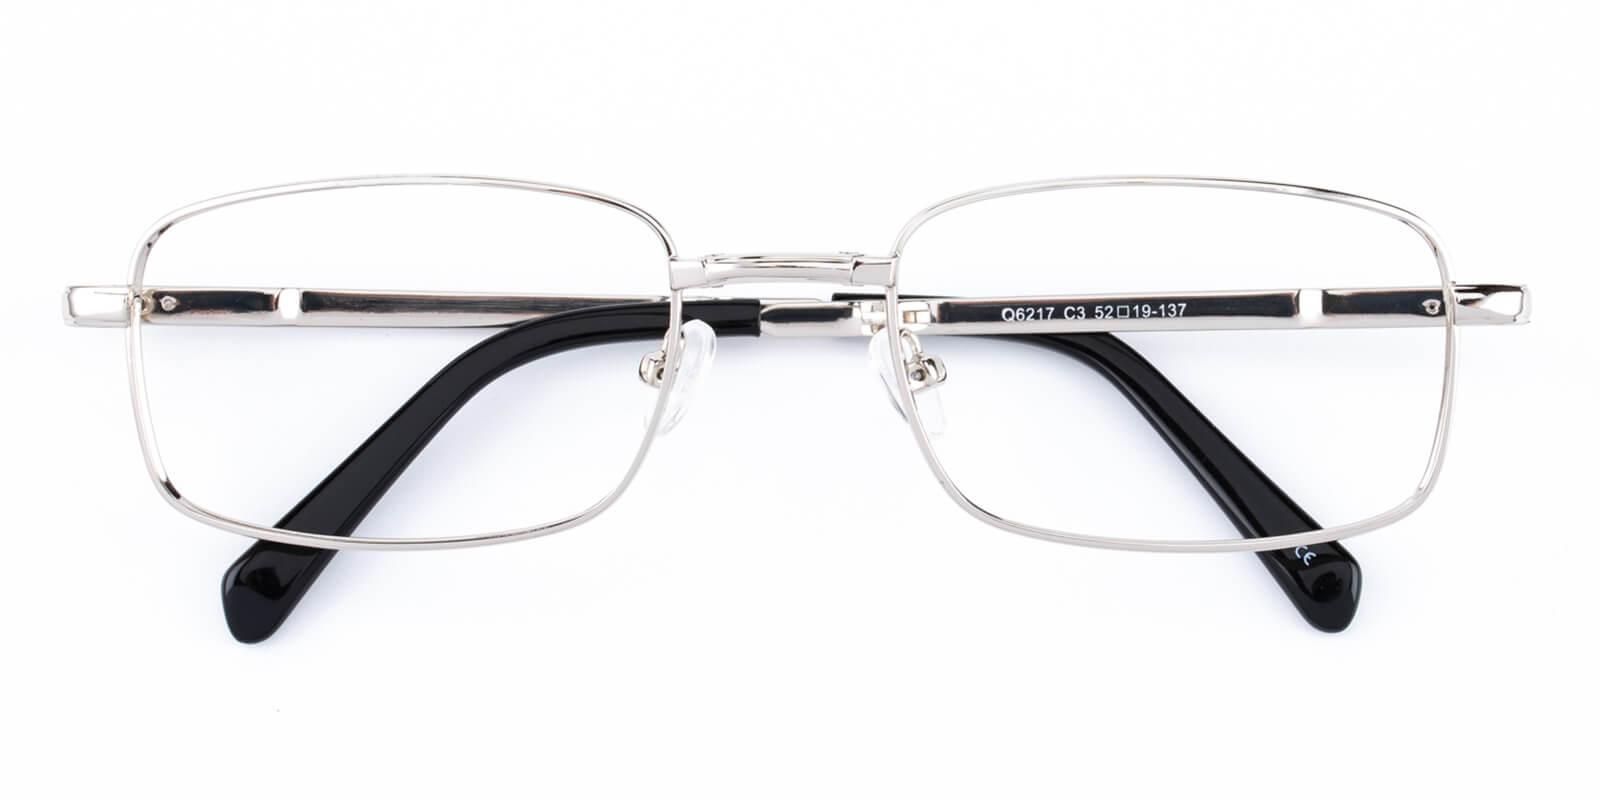 Norfolk-Silver-Rectangle-Metal-Eyeglasses-detail